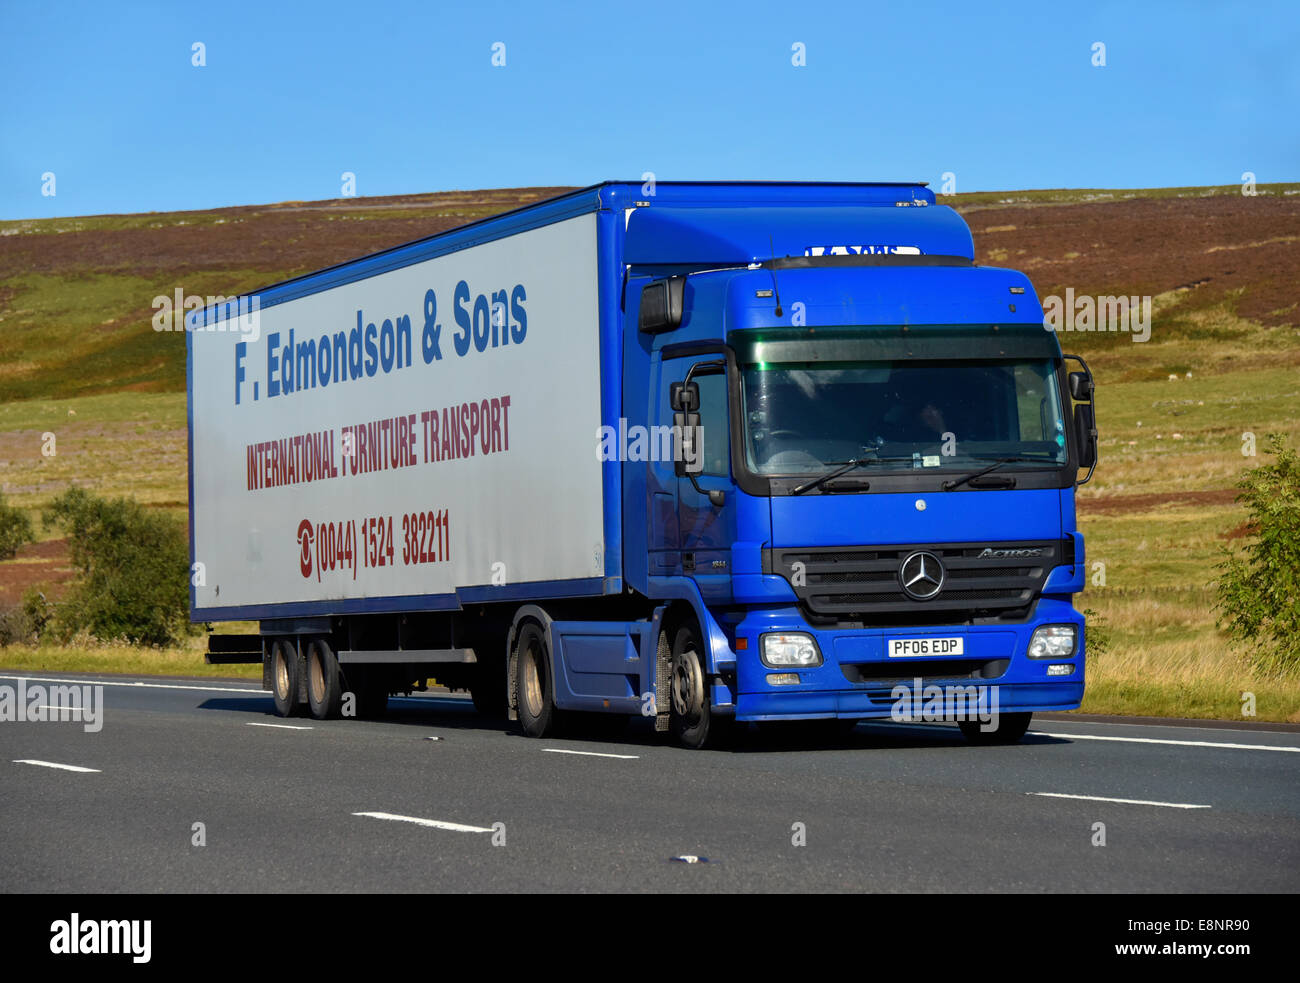 F.Edmondson & Sons HGV. M6 Motorway, southbound. Shap, Cumbria, England, United Kingdom, Europe. - Stock Image